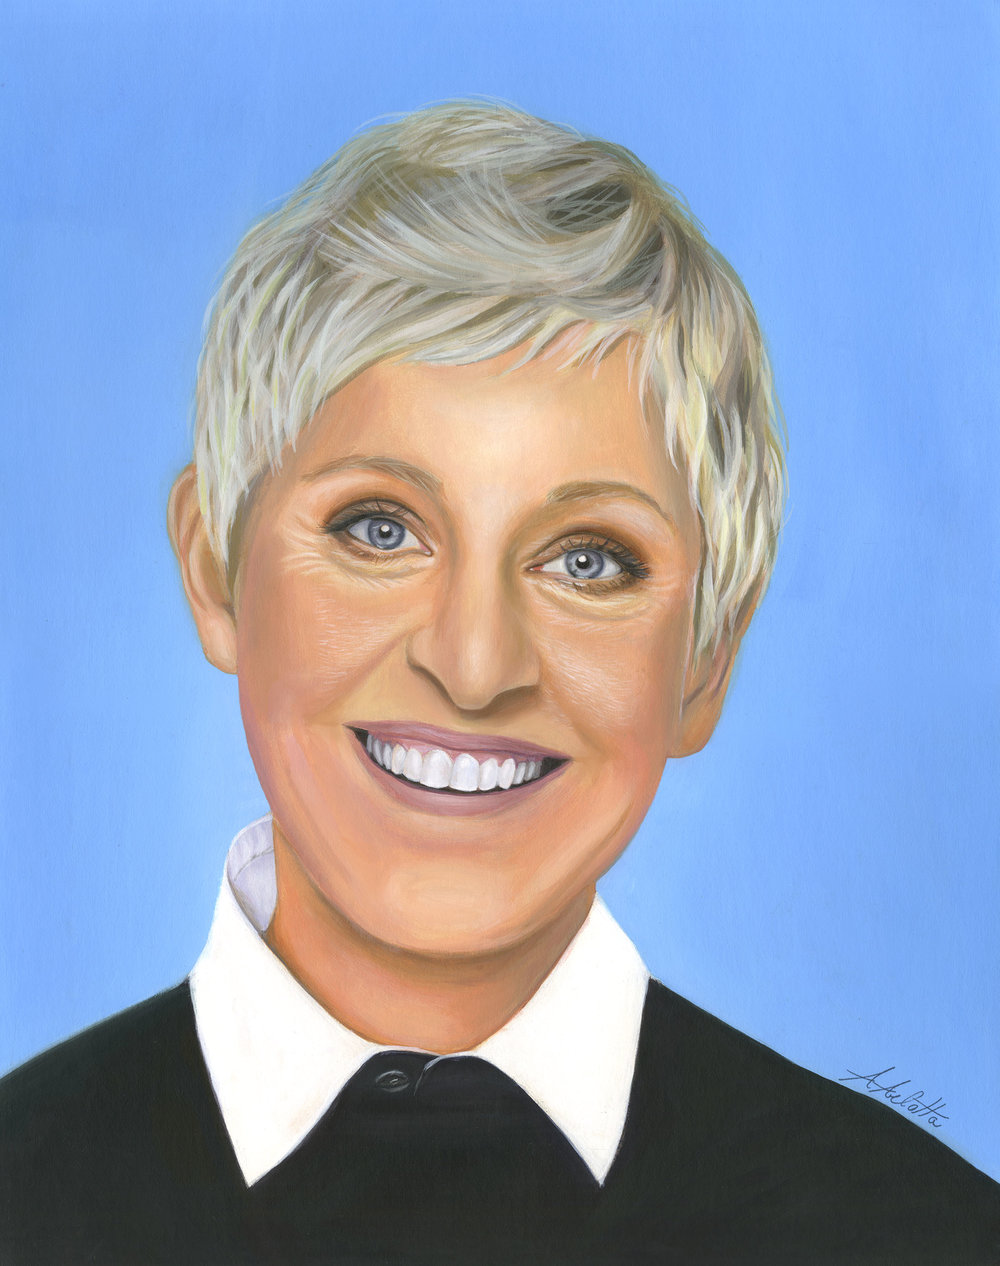 """ELLEN DEGENERES""  Acrylic on illustration board, 16""x20"", 2016"